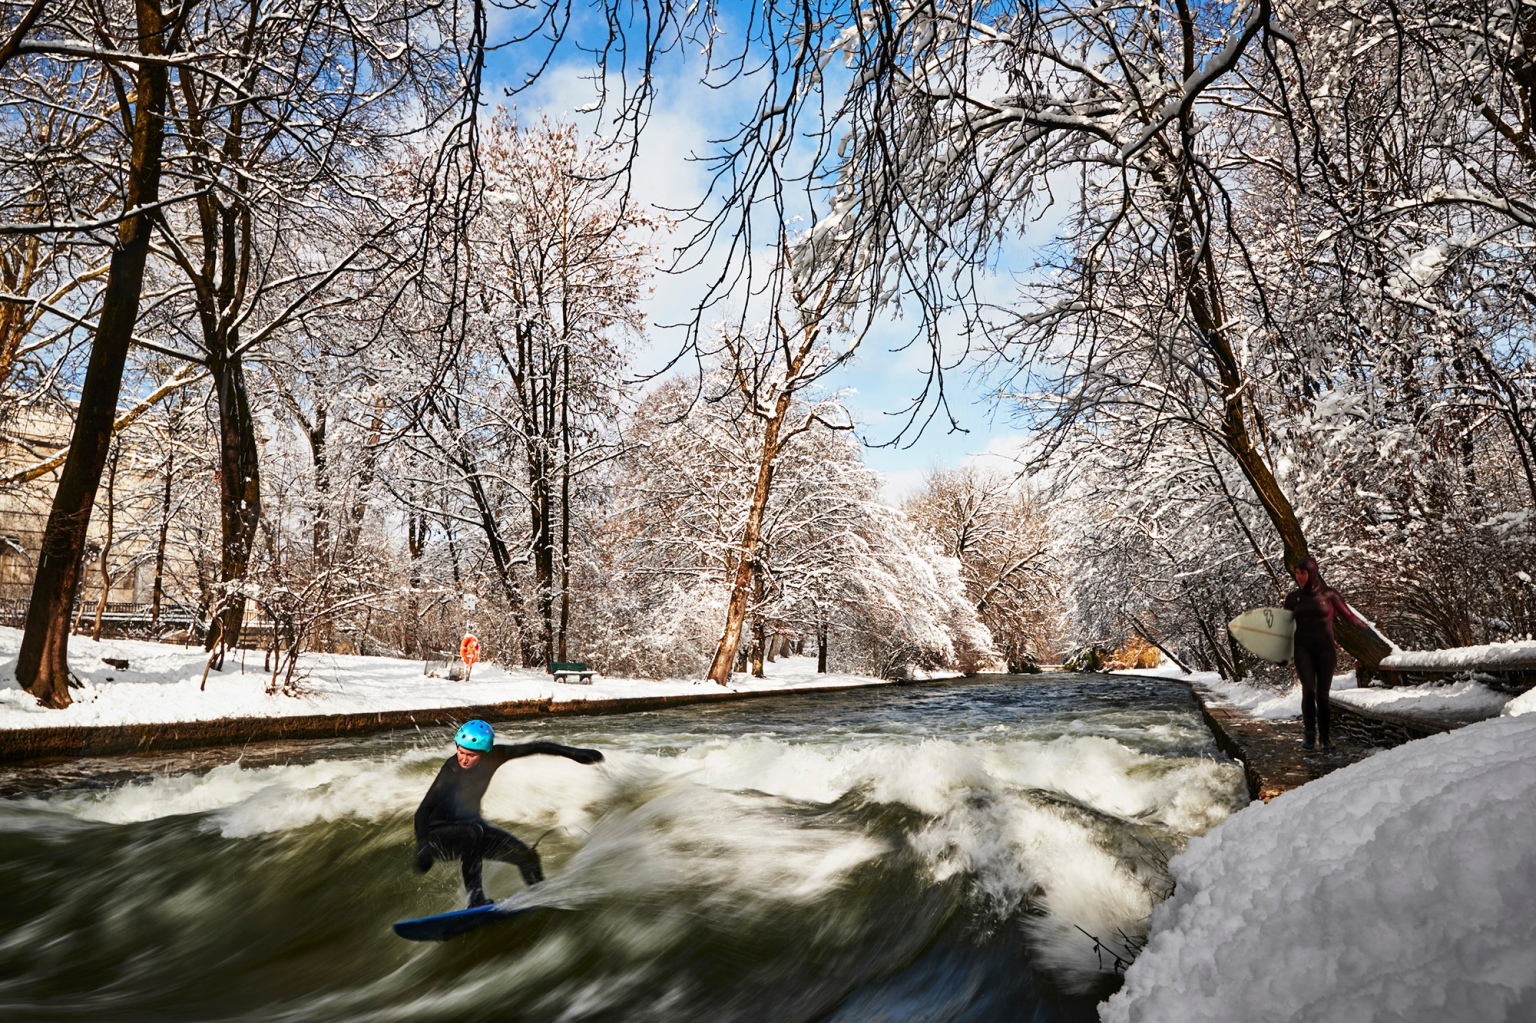 A surfer rides the Eisbach wave in the English Garden in Munich, Germany, on Feb. 4. The manmade wave wave became legal to ride in 2010 and is recommended for only experienced surfers due to its forceful currents and the concealed concrete riverbed. (Adam Pretty/Getty Images)